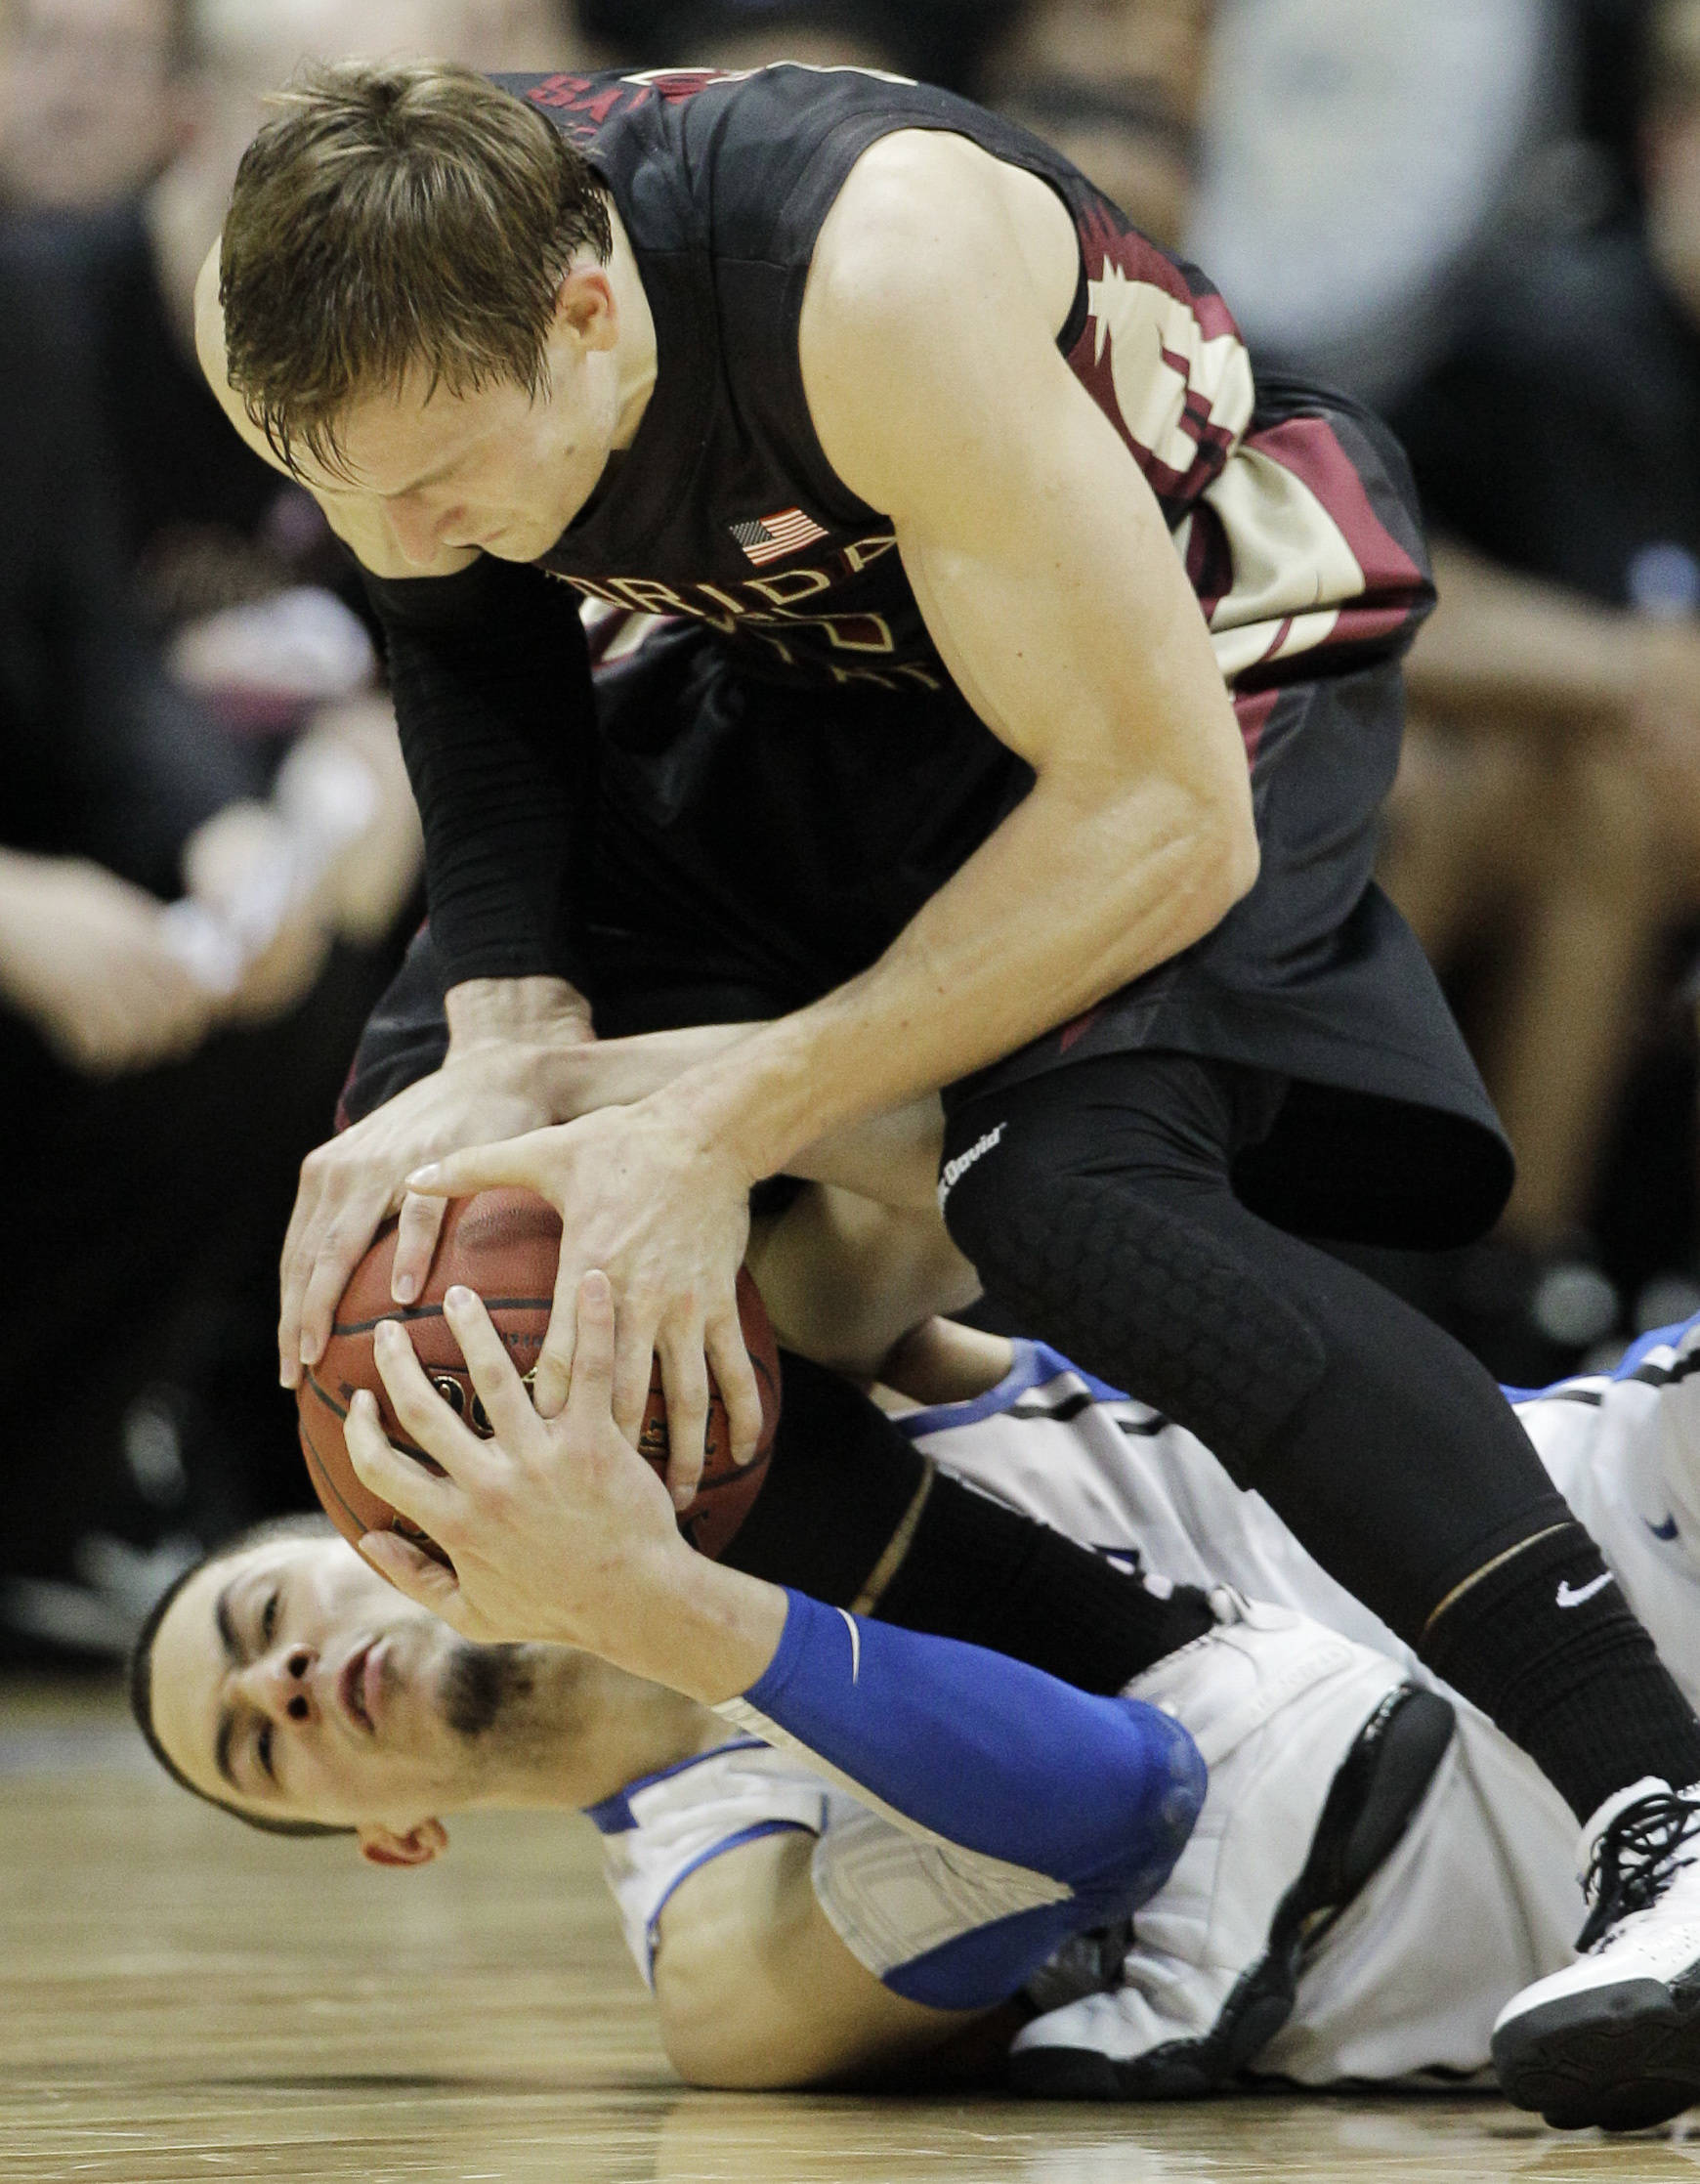 Duke guard Austin Rivers, bottom, and Florida State guard Deividas Dulkys (4) grab for a lose ball during the second half of an NCAA college basketball game in the semifinals of the Atlantic Coast Conference tournament, Saturday, March 10, 2012, in Atlanta. (AP Photo/Chuck Burton)